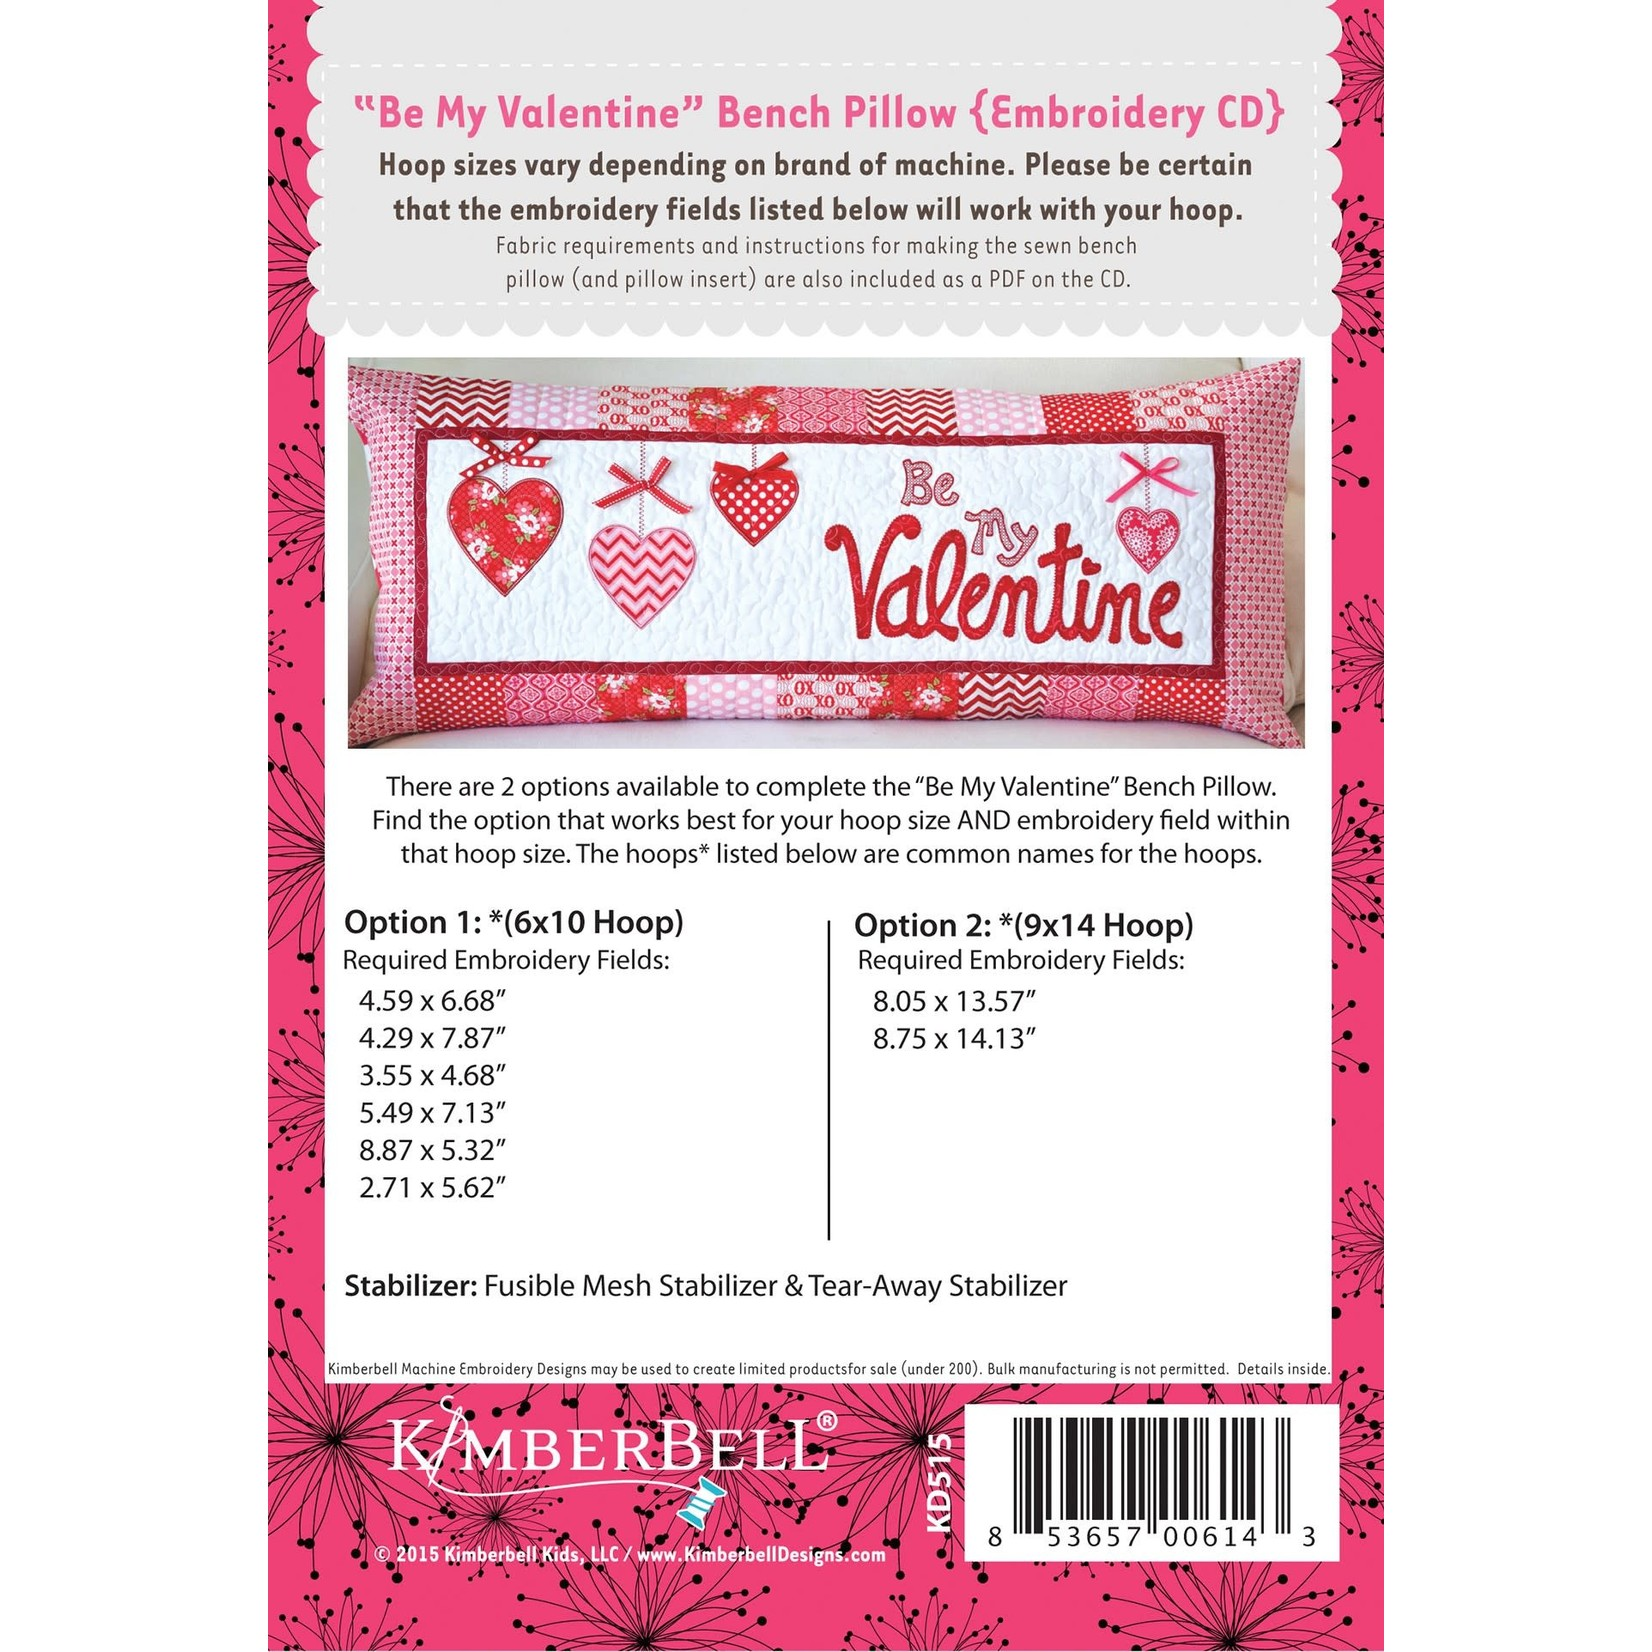 Kimberbell Designs Be My Valentine Bench Pillow Embroidery Designs CD